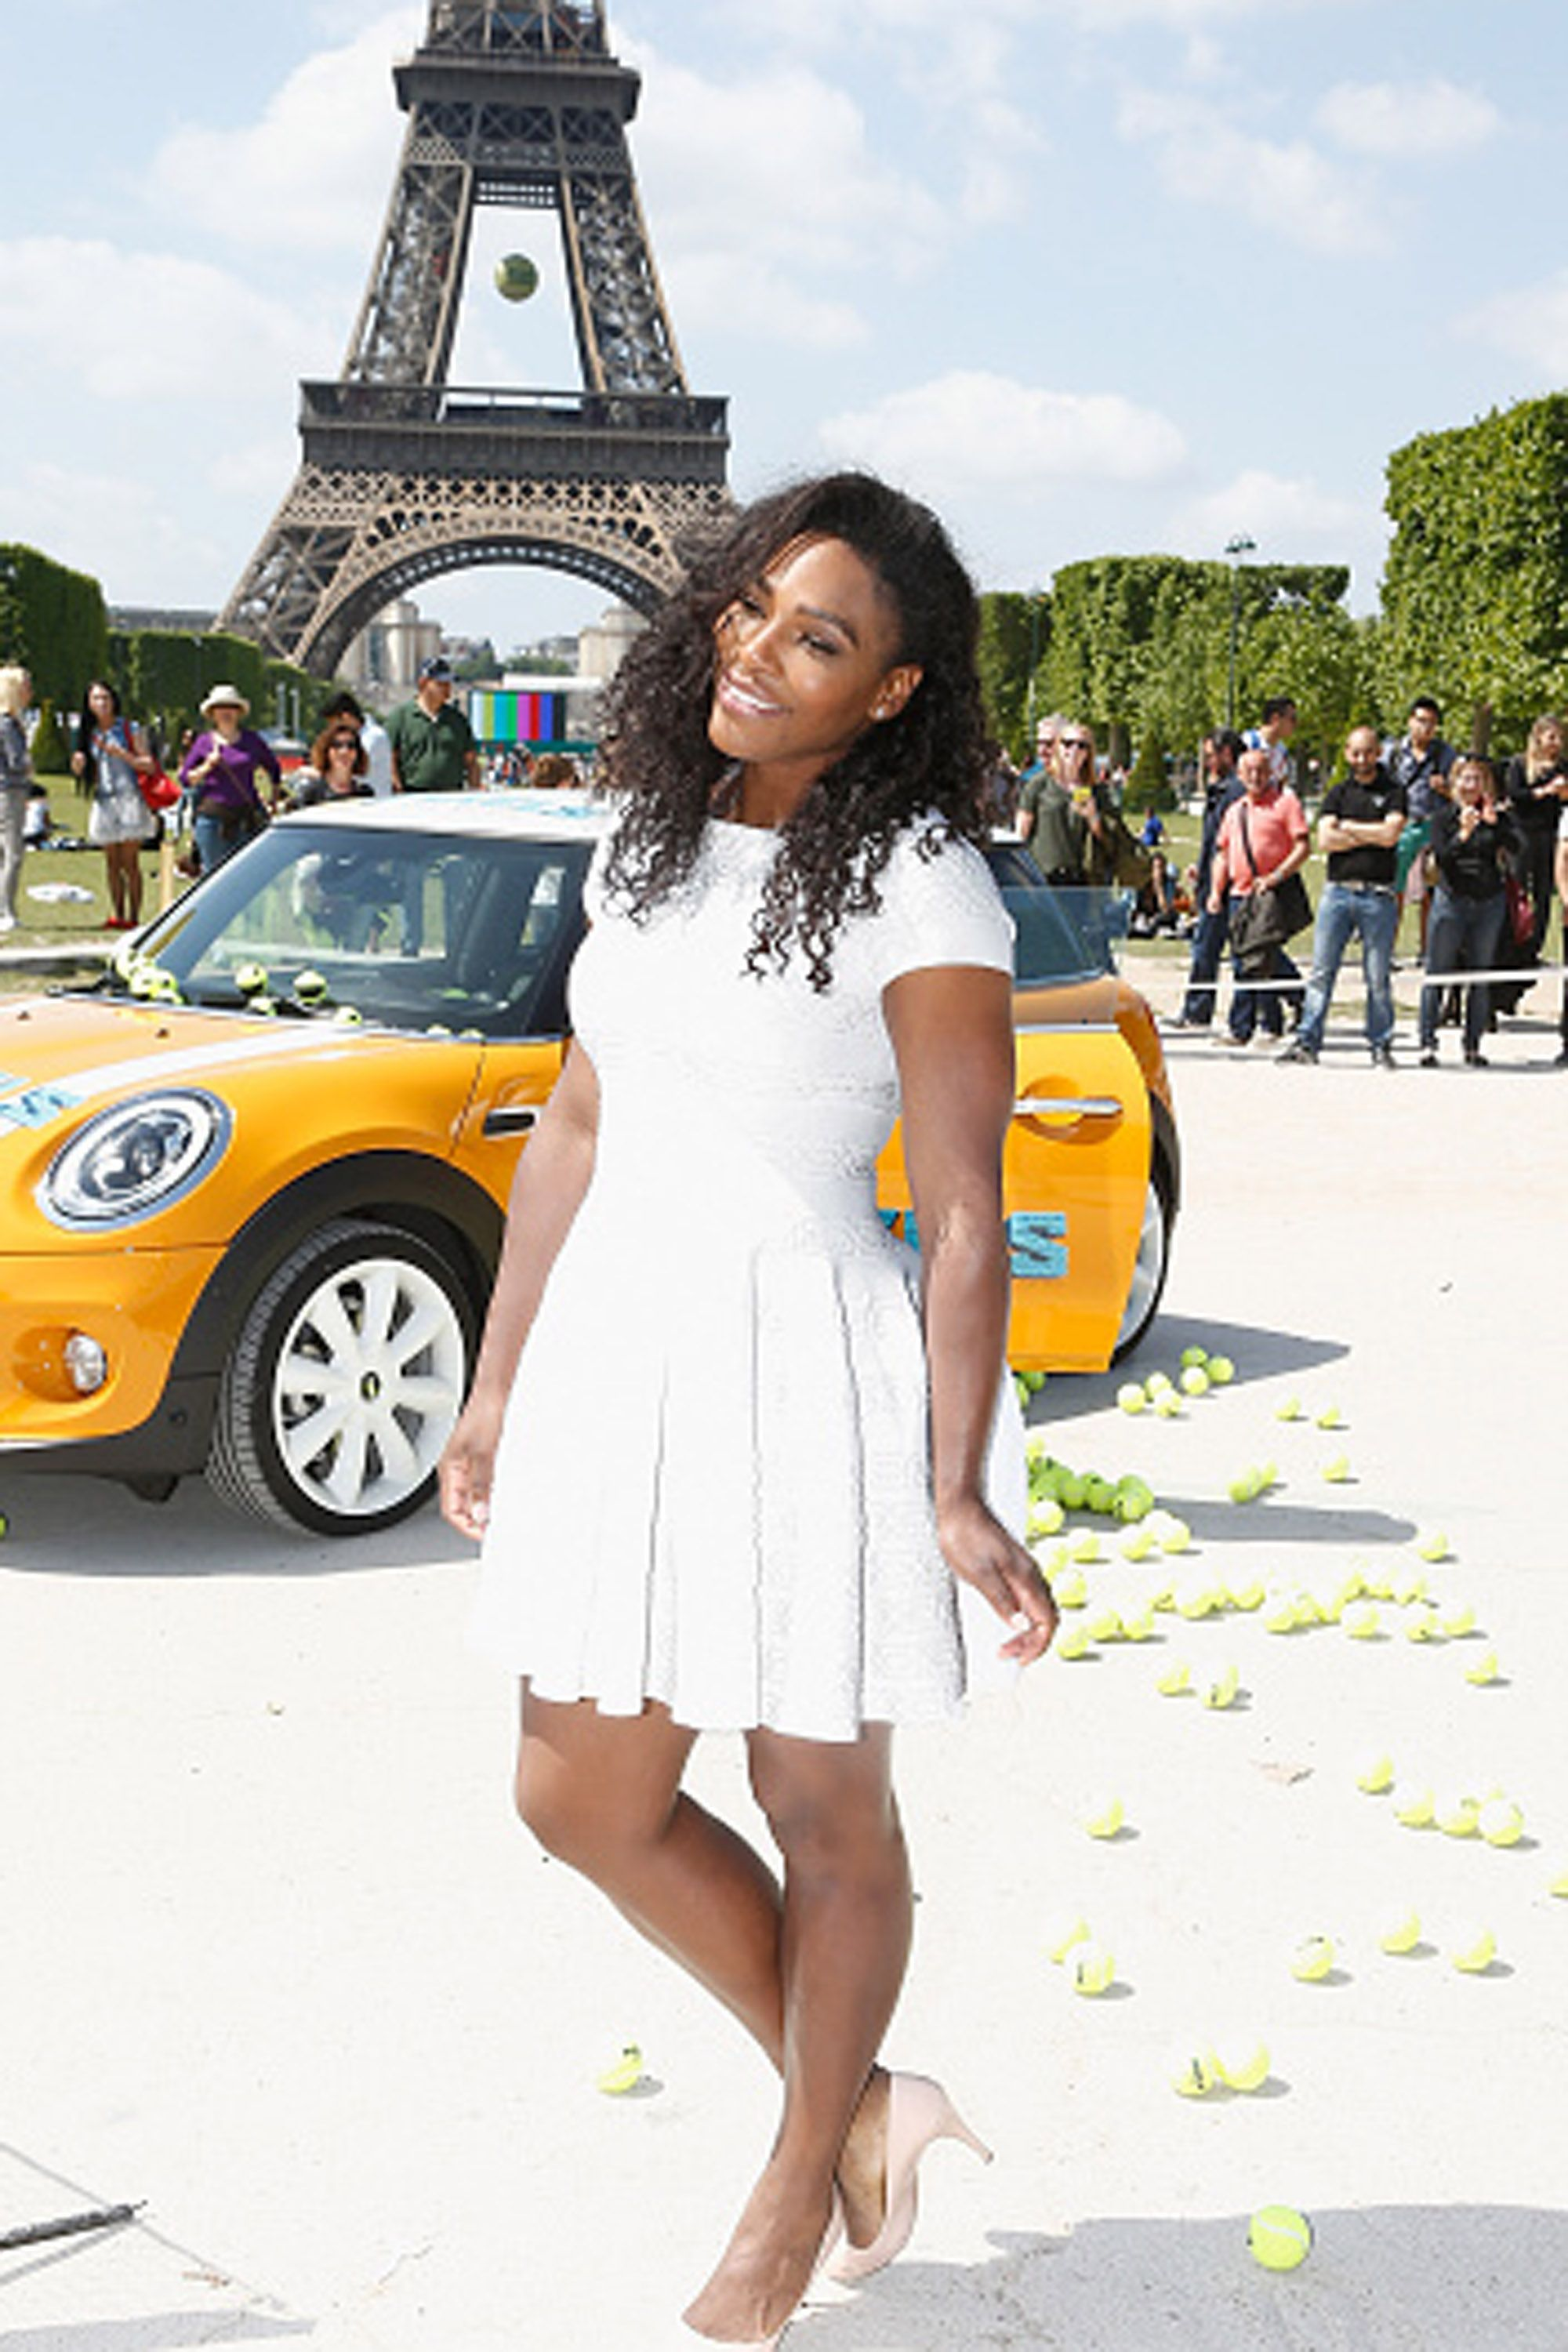 PARIS, FRANCE - MAY 22: American professional tennis player Serena Williams attends a photocall to promote the movie 'Pixels' on May 22, 2015 in Paris, France.  (Photo by Julien Hekimian/WireImage)